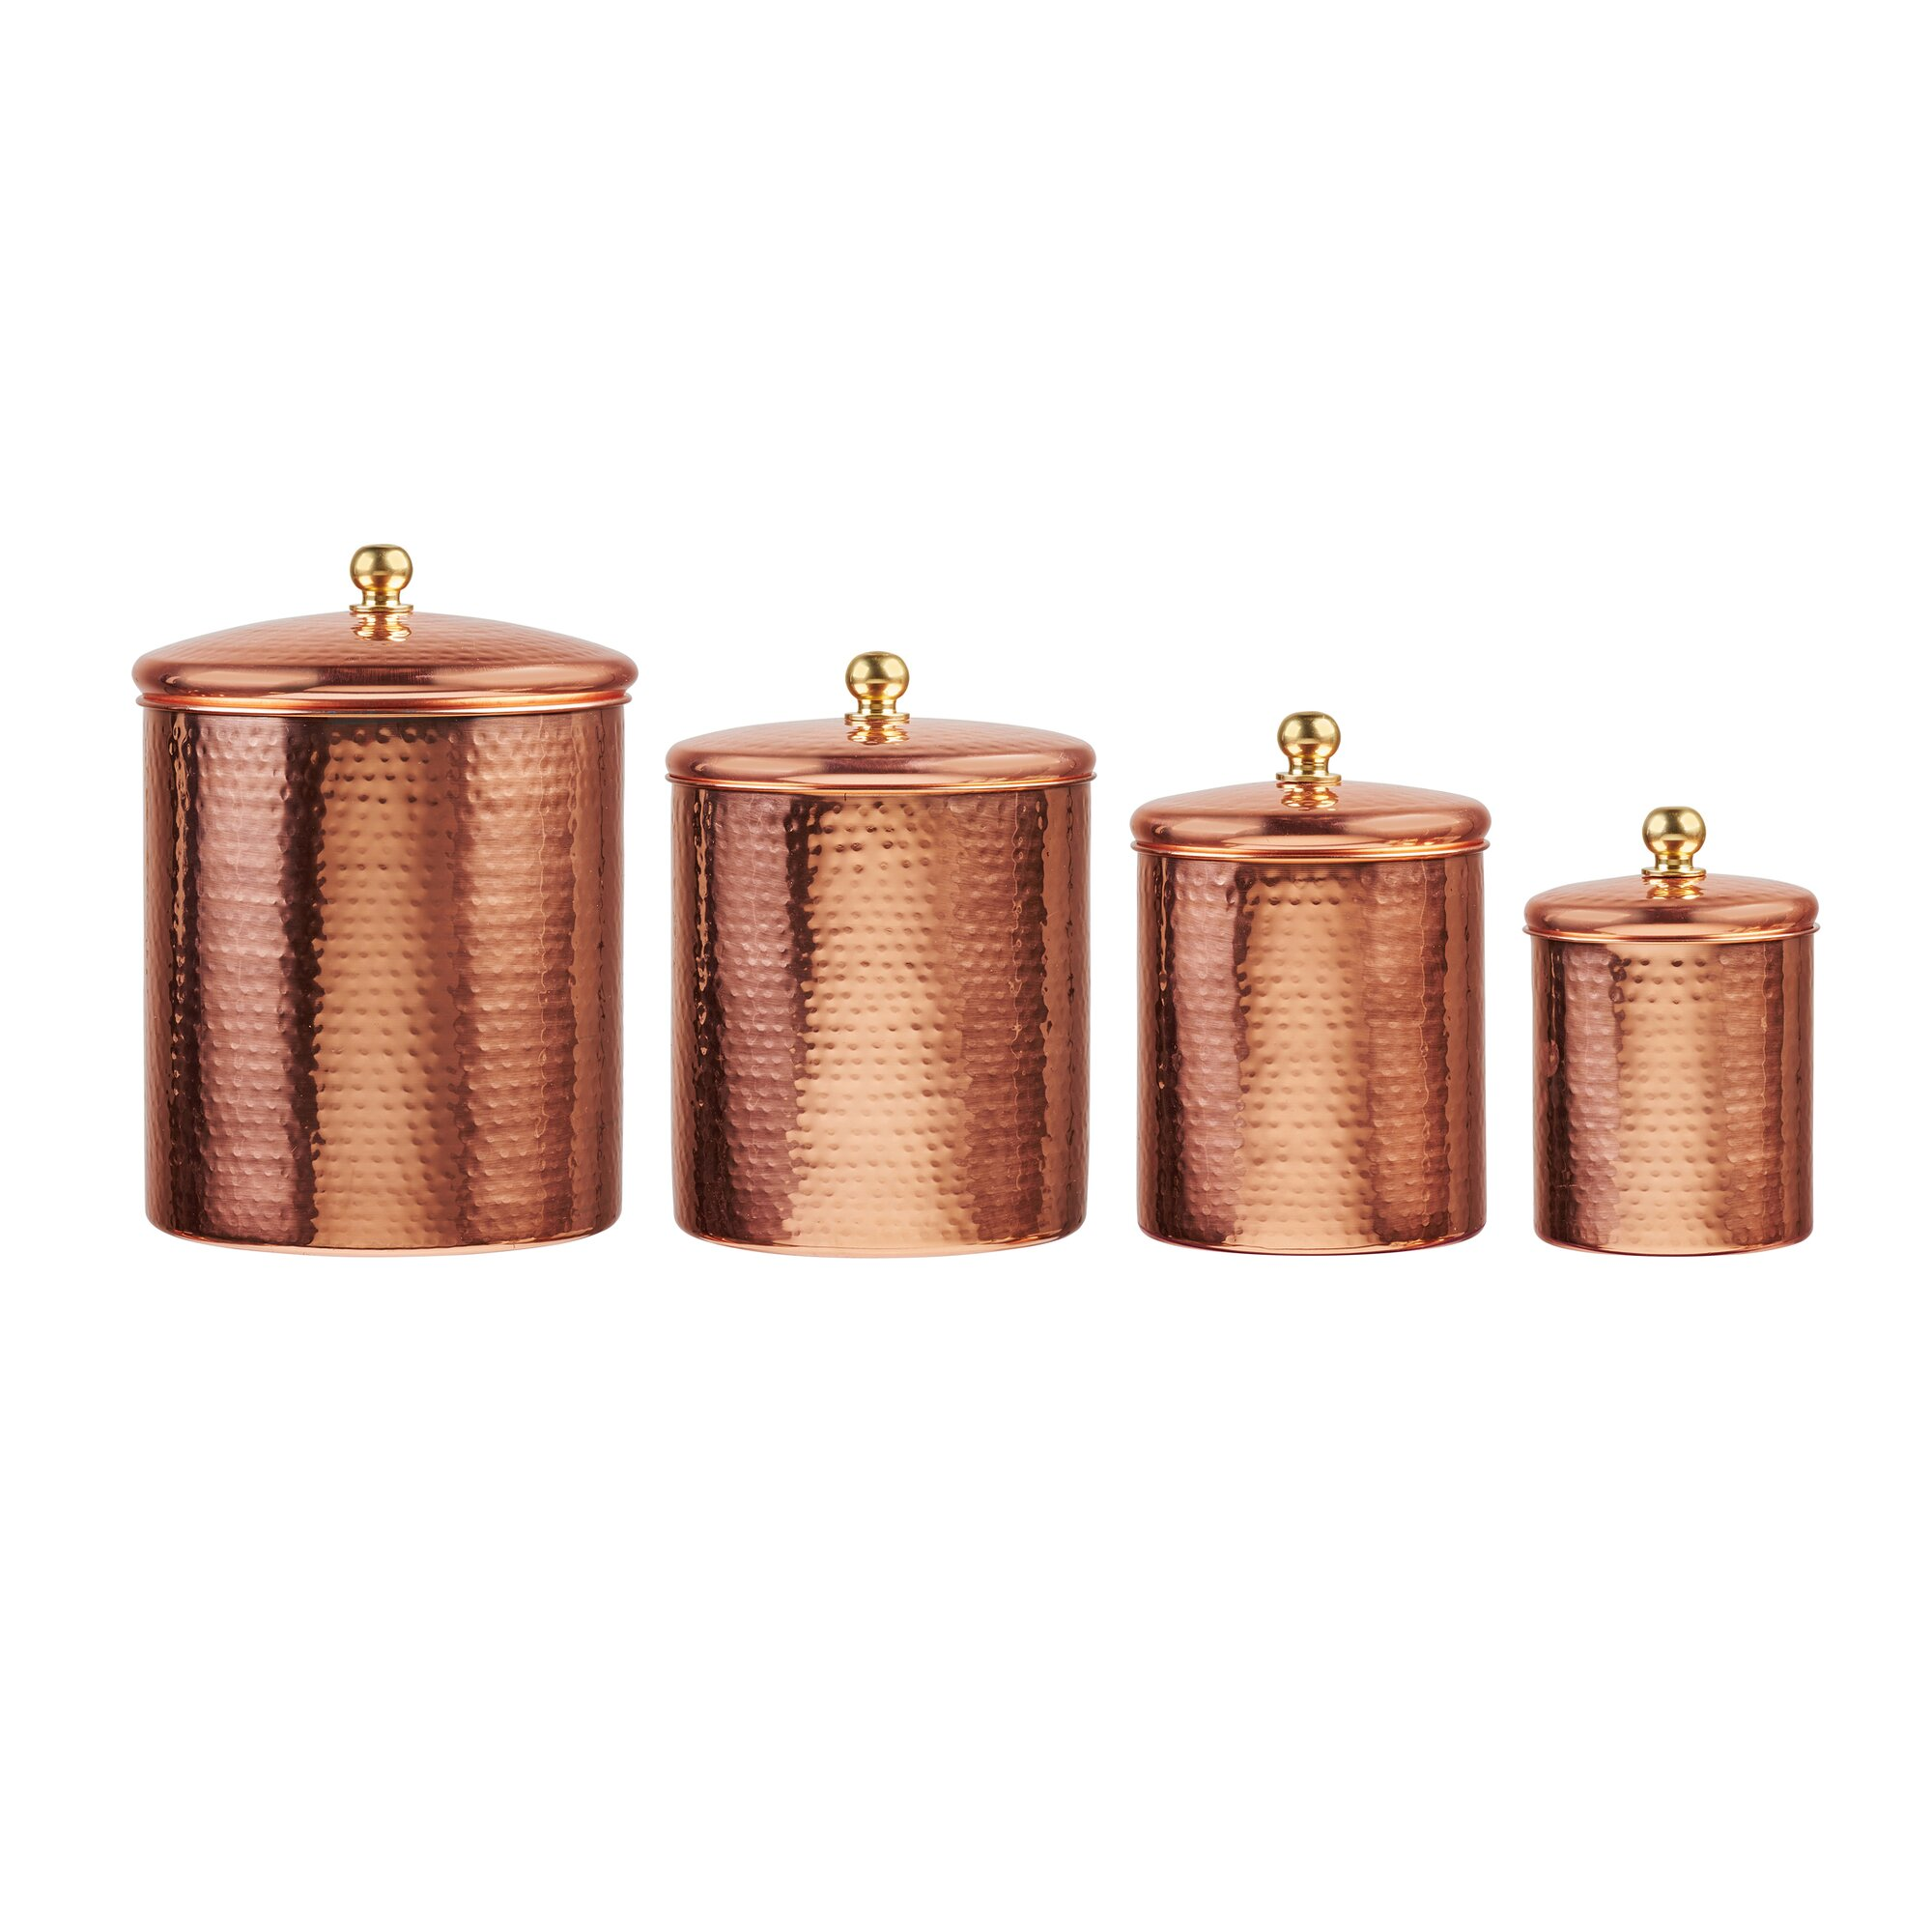 100 bronze kitchen canisters stainless steel canisters bronze kitchen canisters tuscan kitchen canisters sets tuscan collection deluxe